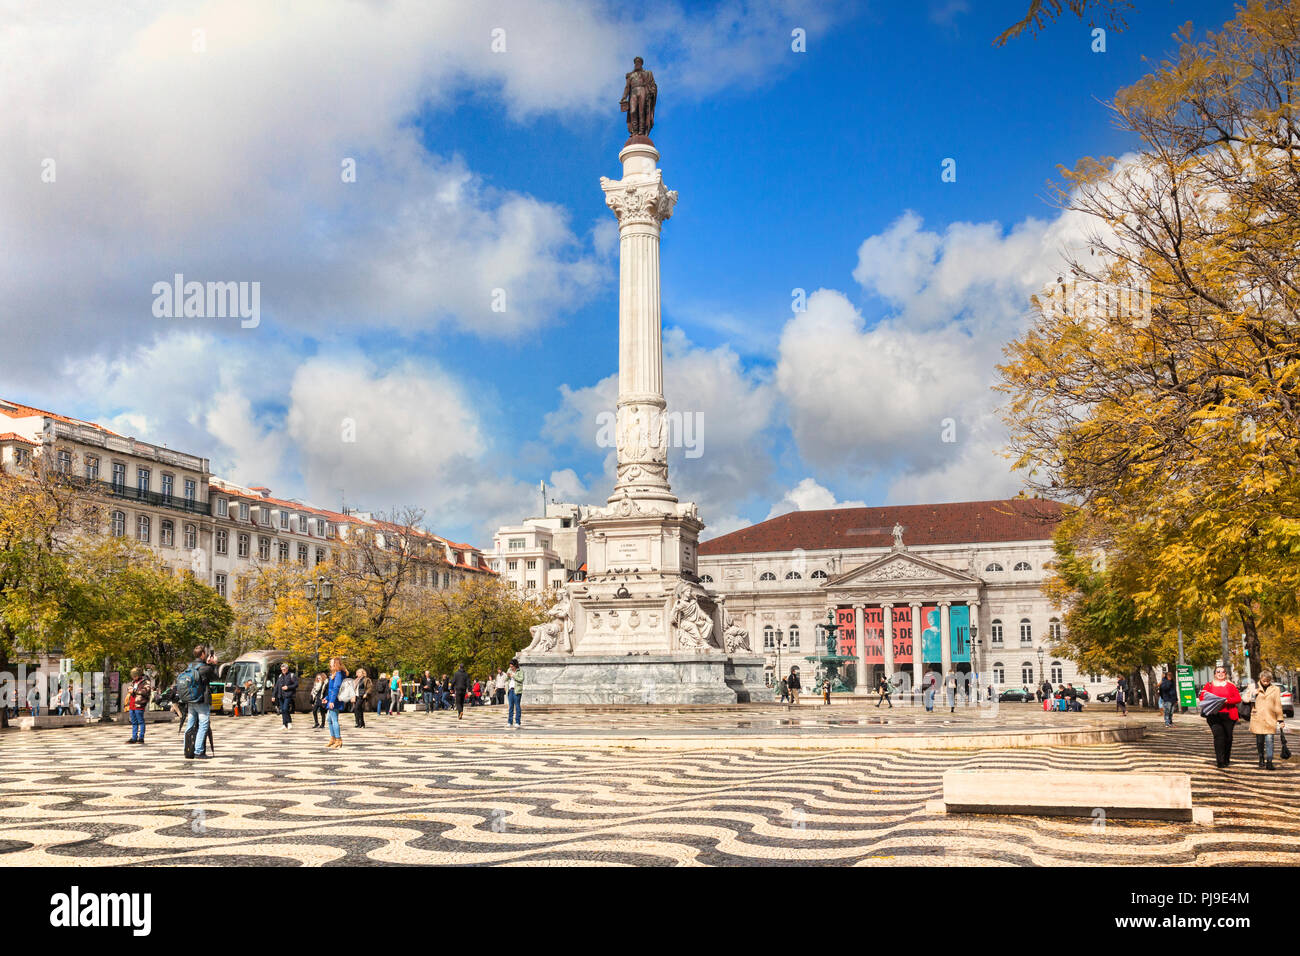 5 March 2018: Lisbon, Portugal - Historic Rossio Square, with the Column of Pedro IV, on a sunny day in early spring. - Stock Image